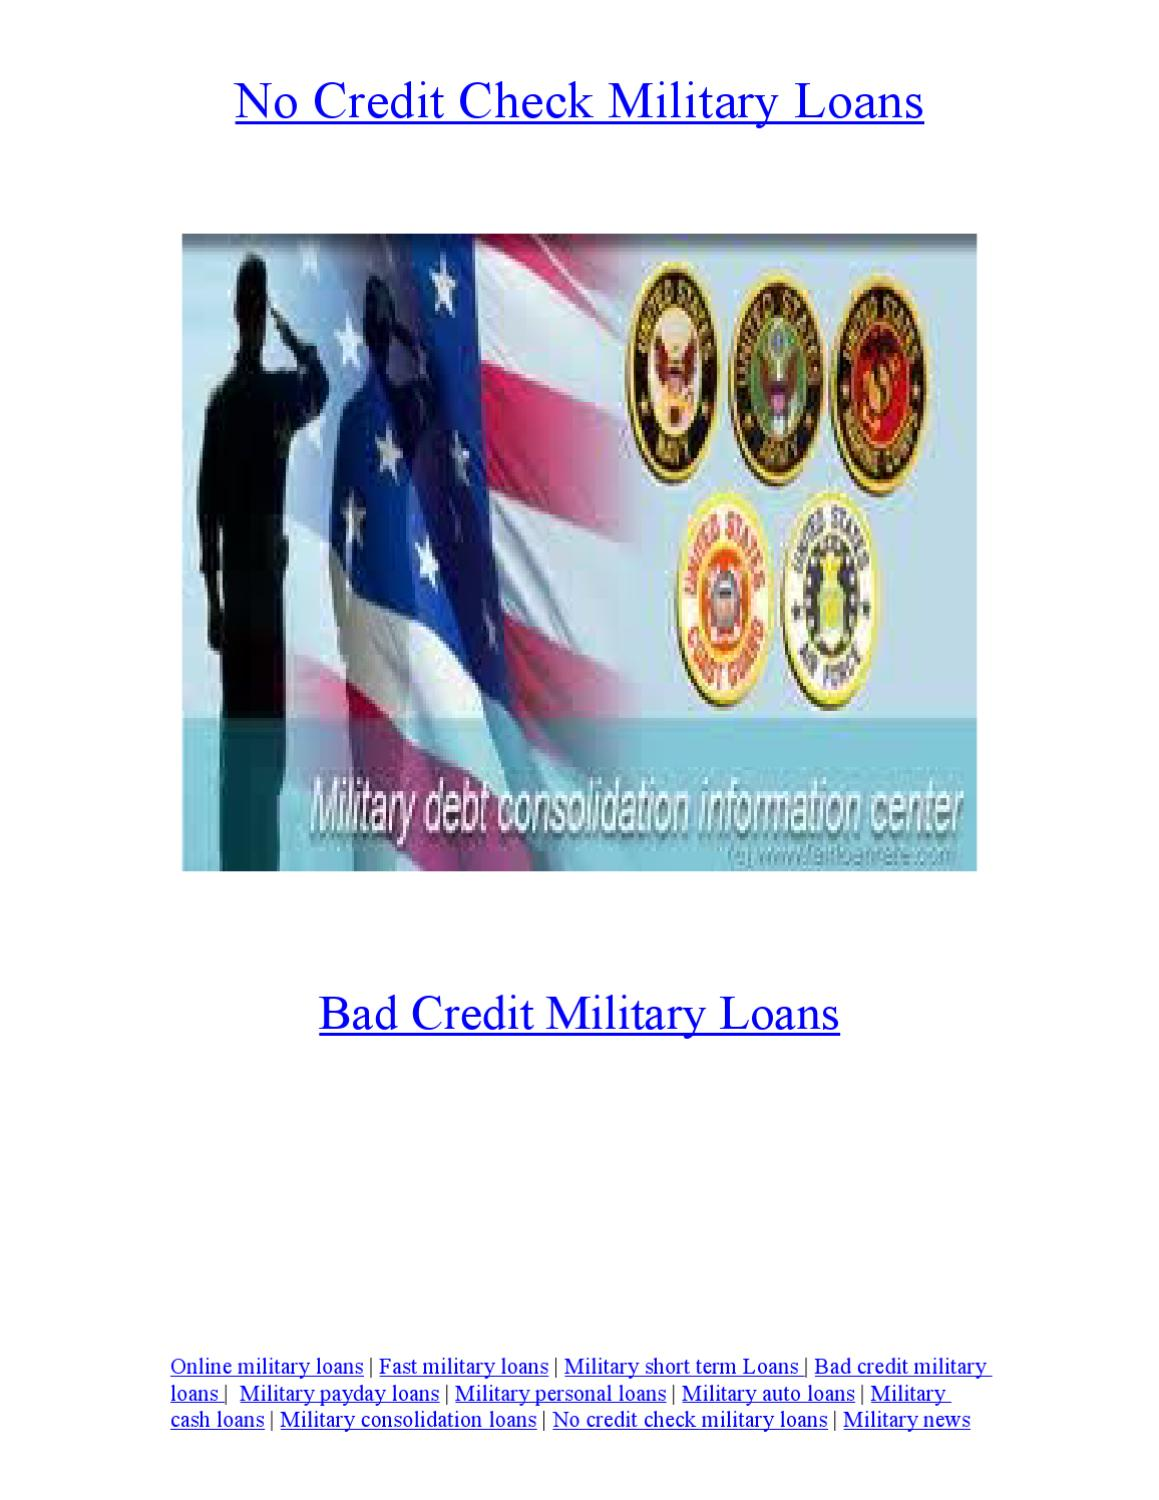 Bad Credit Military Loans >> No Credit Check Military Loans By Caroline Julliet Issuu